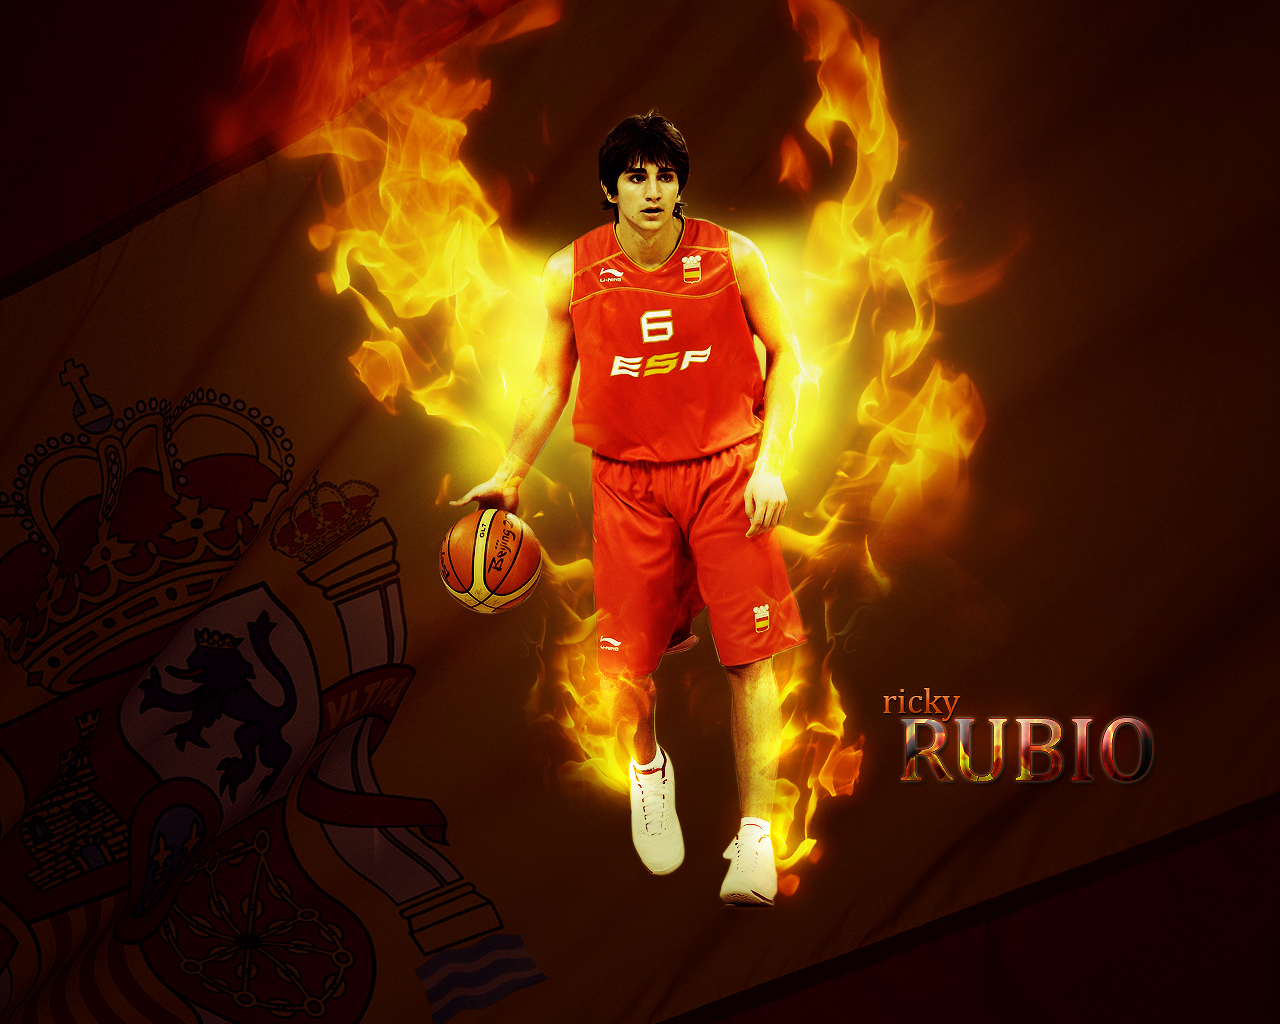 HD Ricky Rubio Wallpapers and Photos  HD People Wallpapers 1280x1024